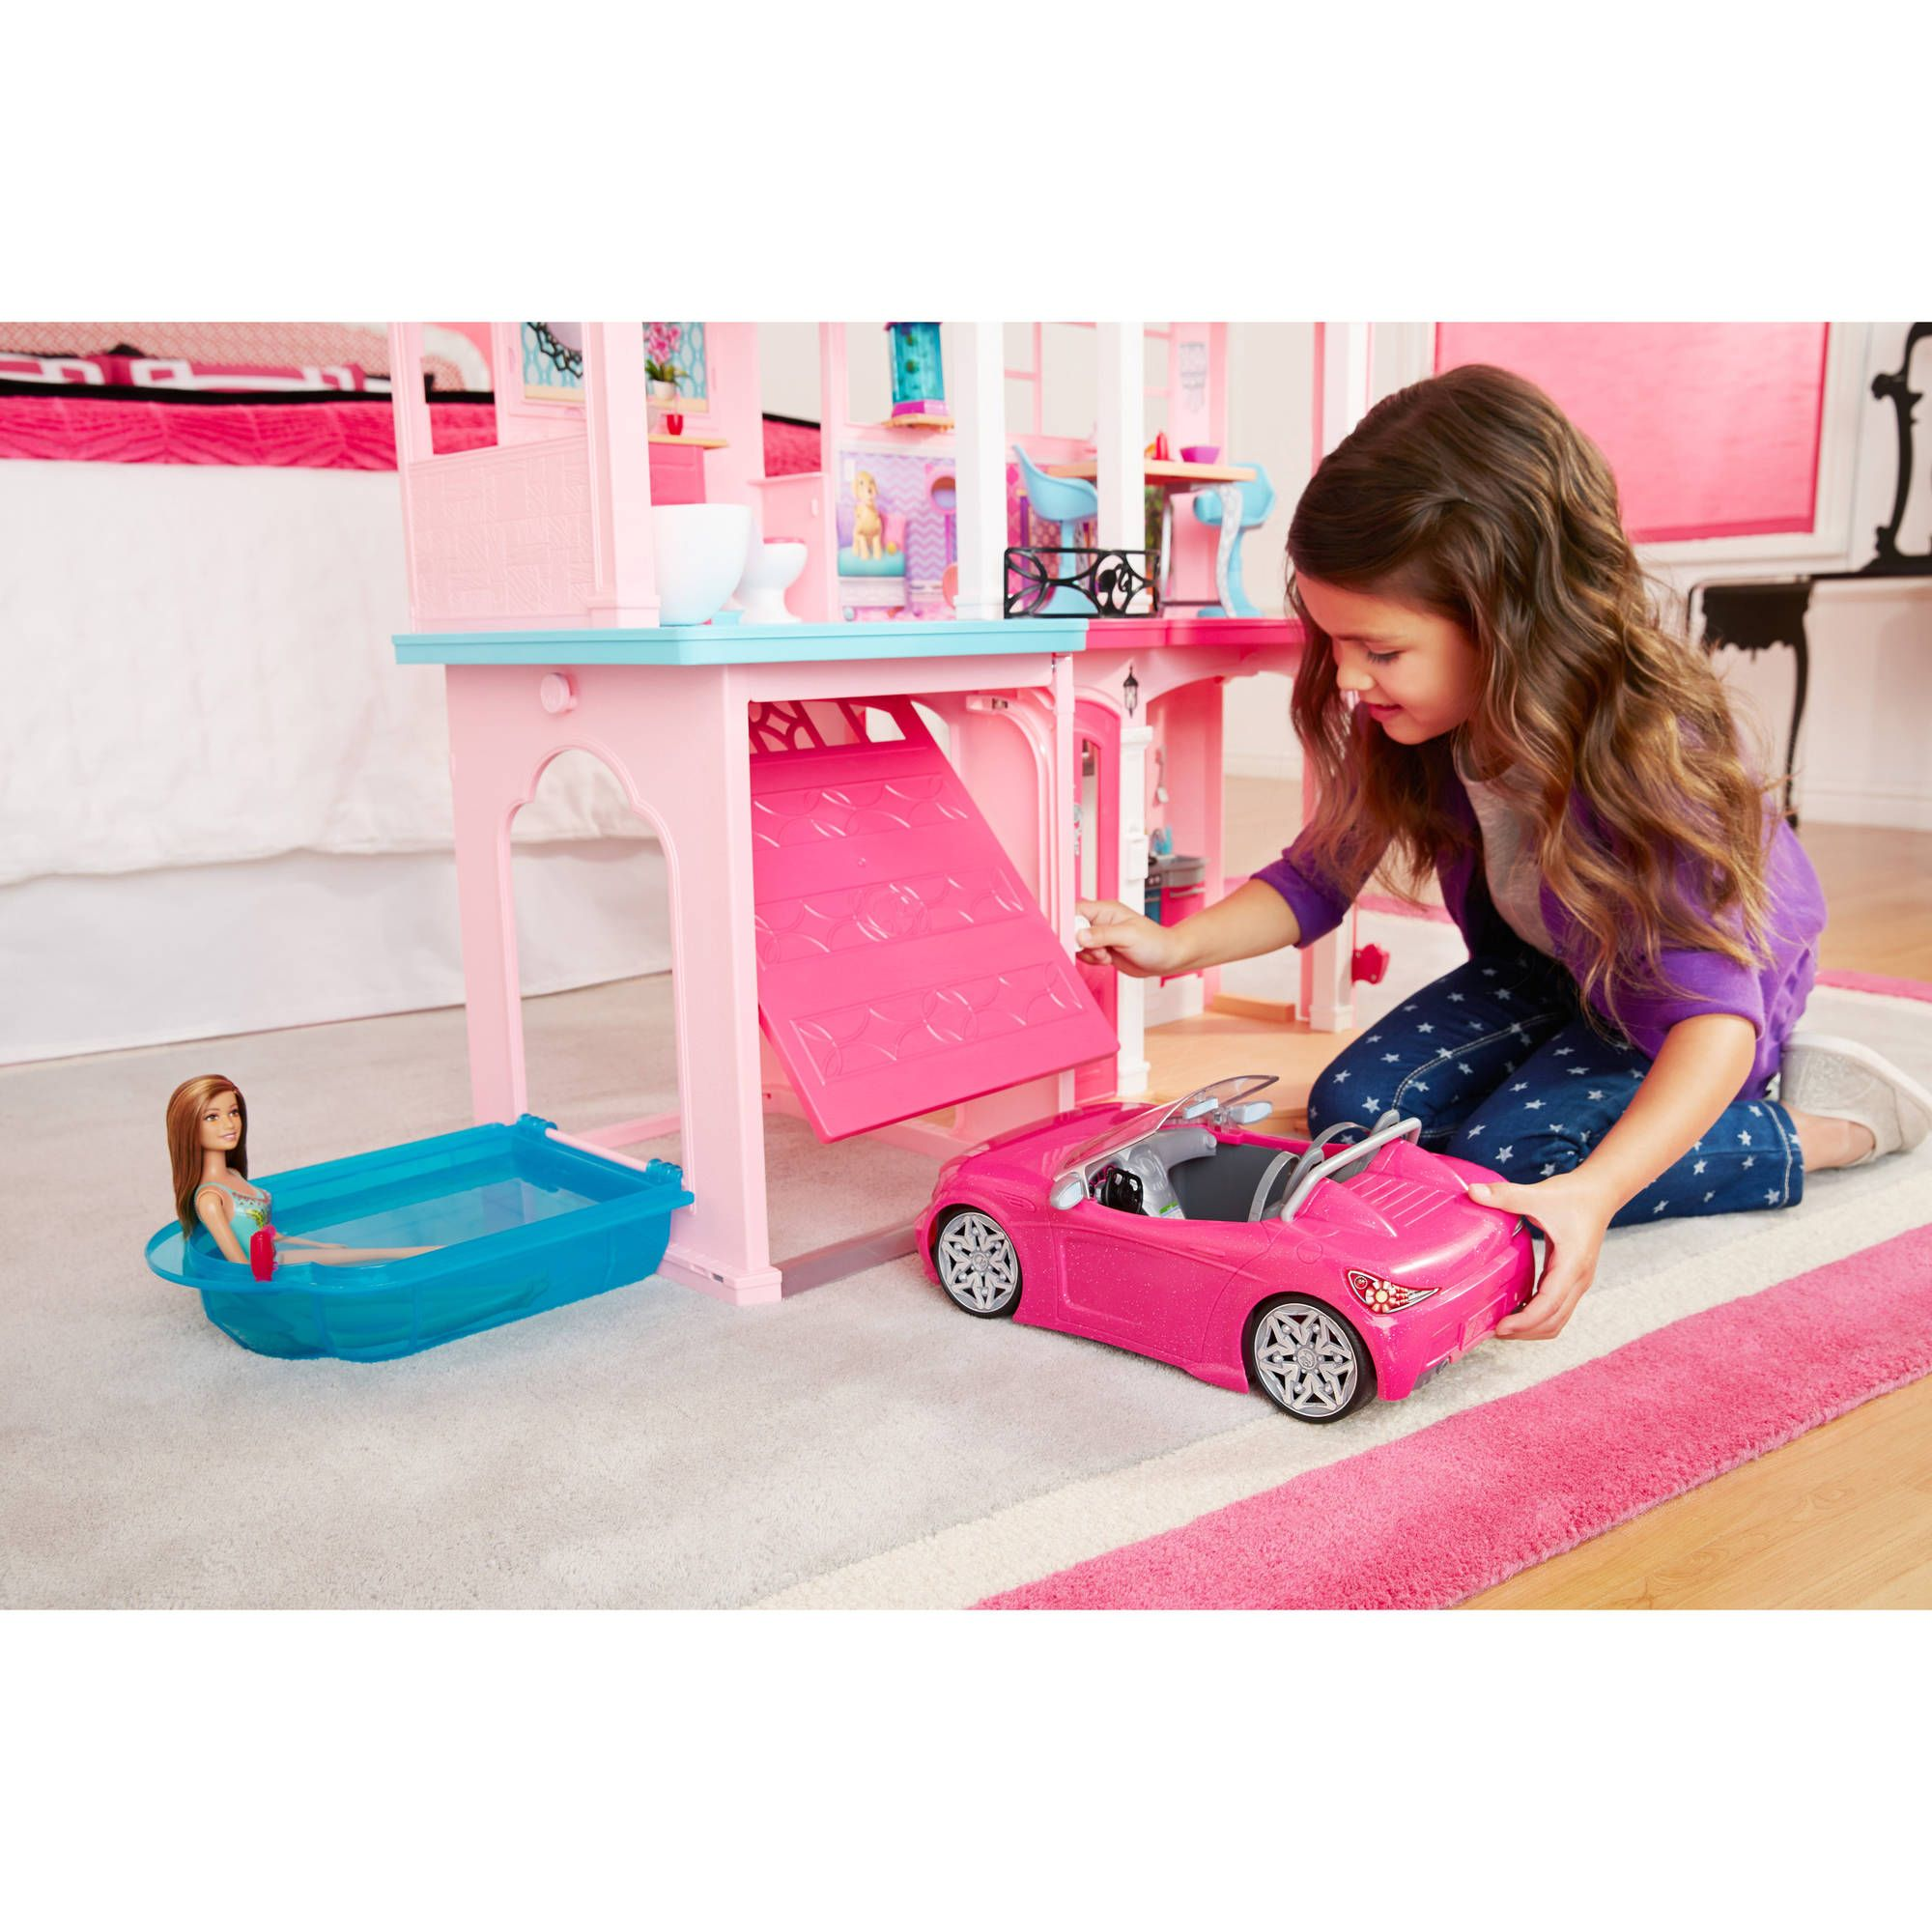 Barbie Dreamhouse Walmart